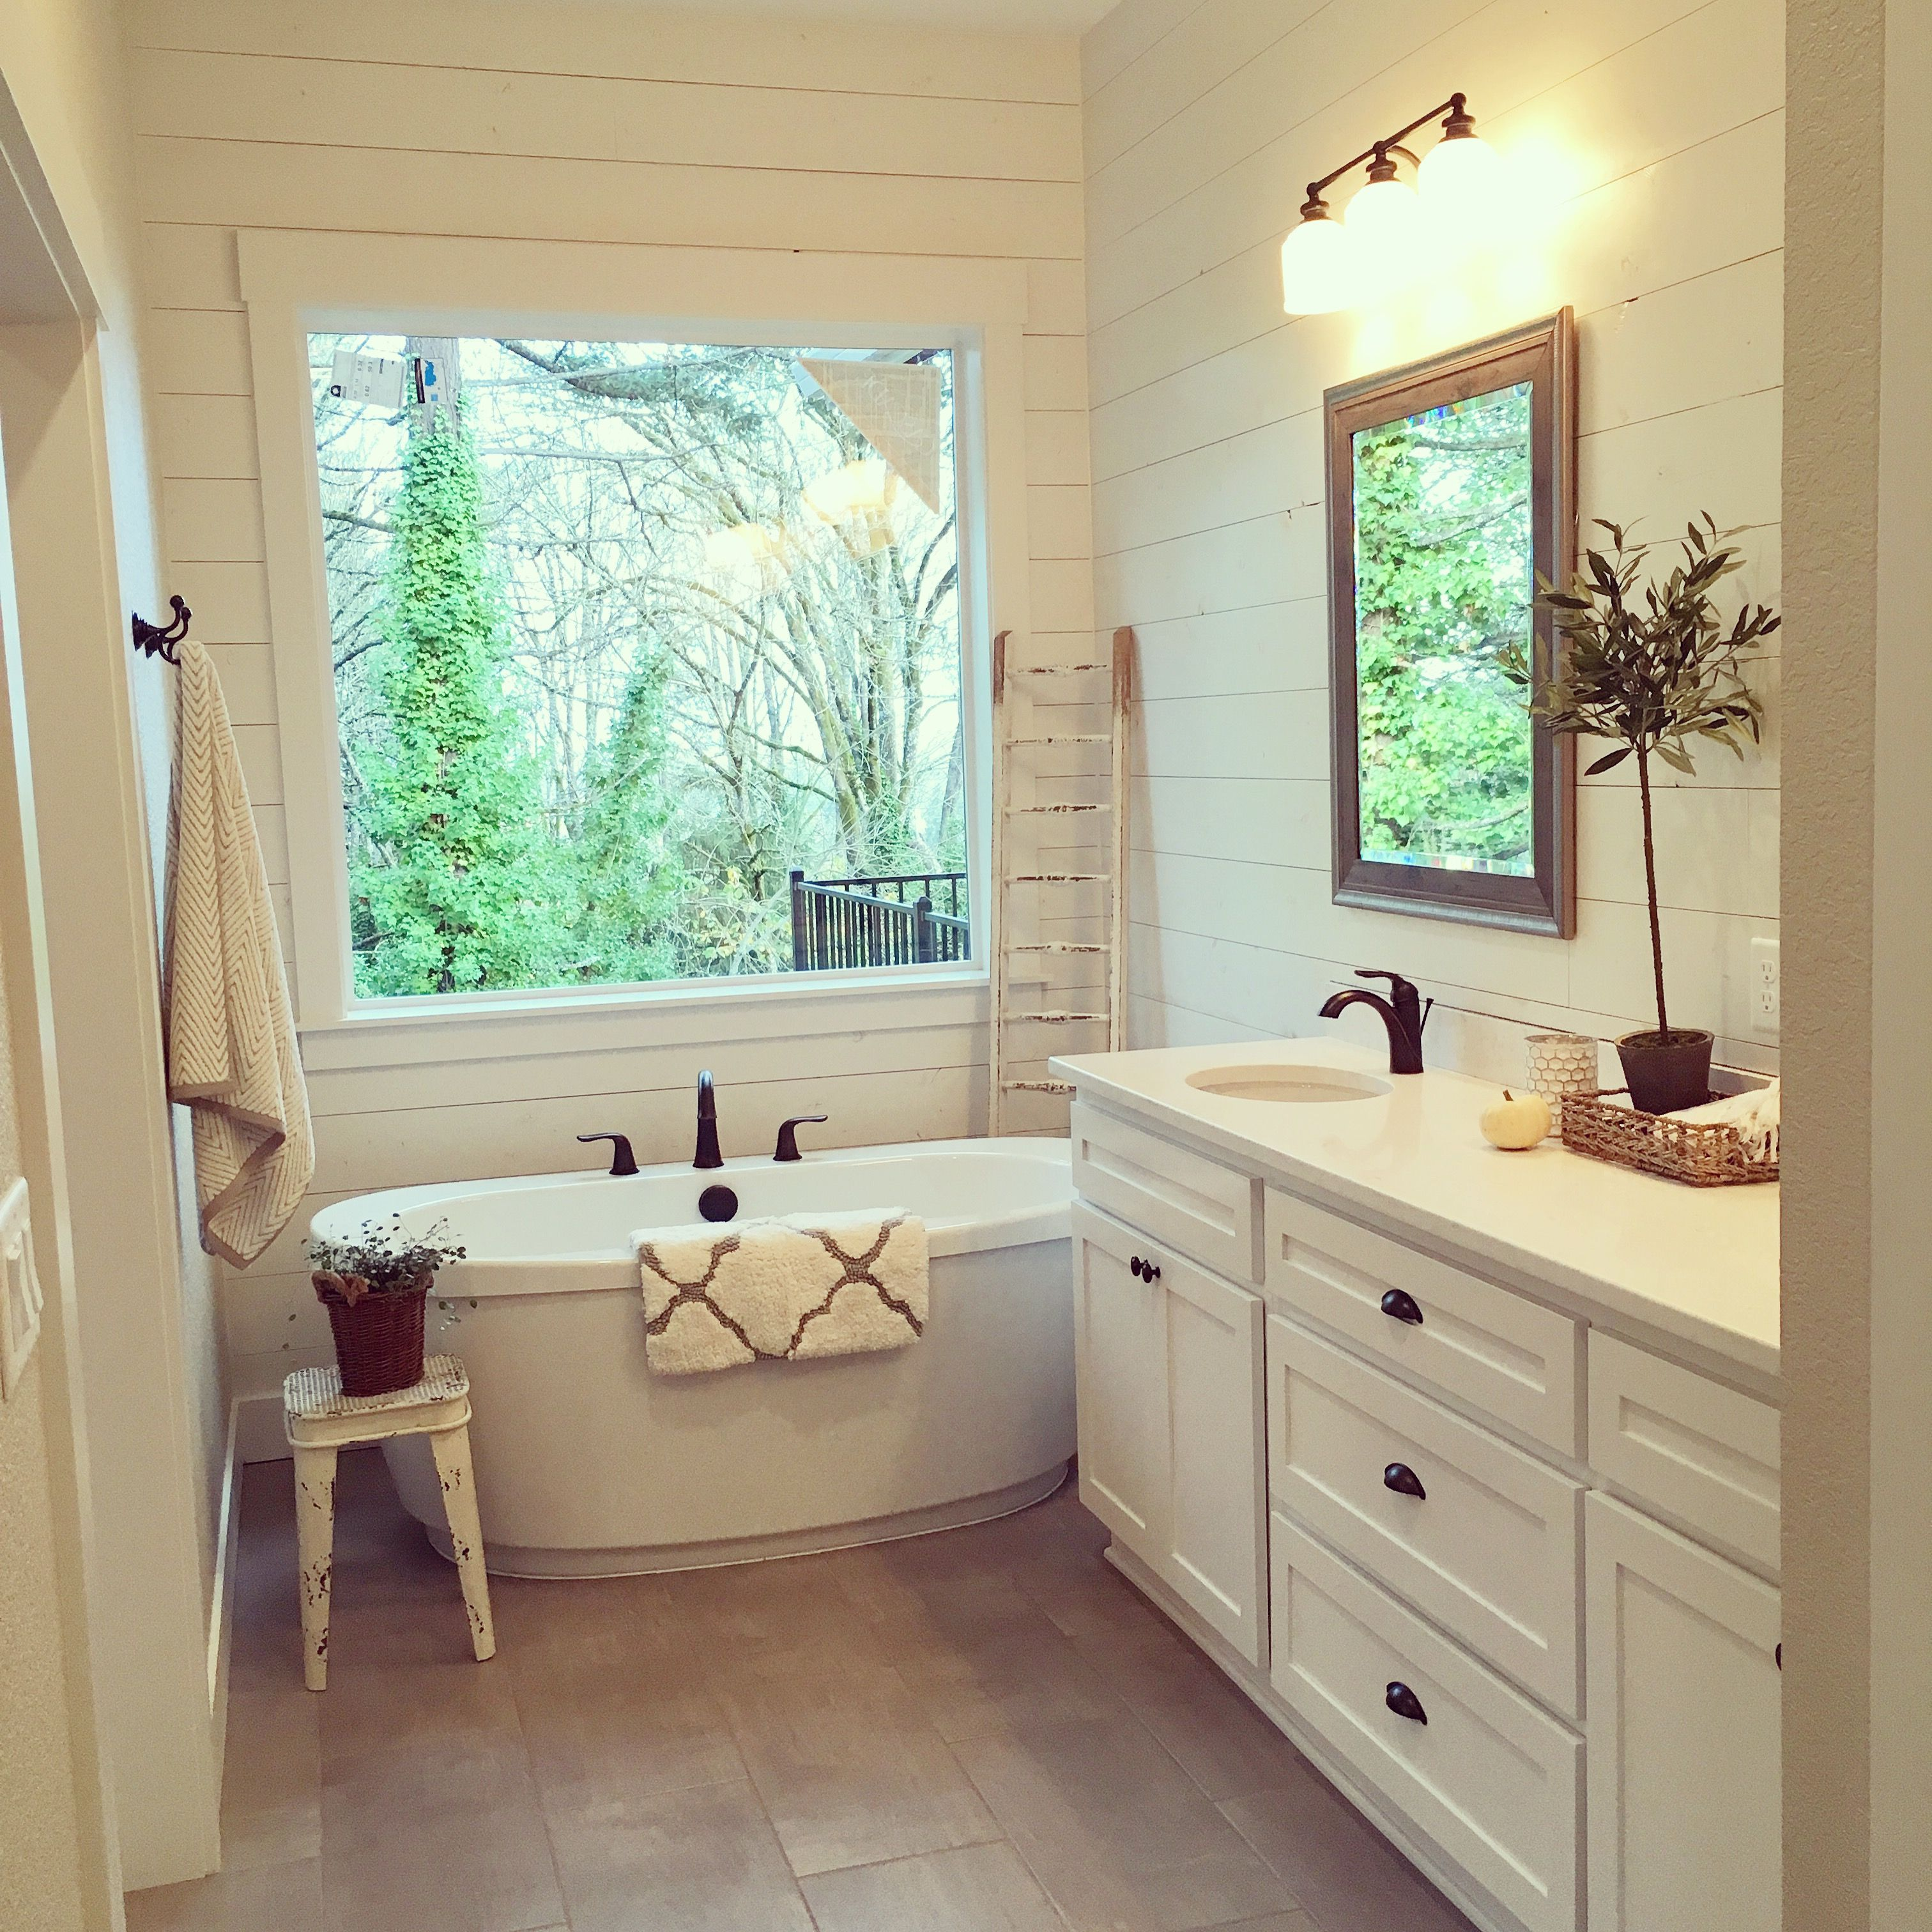 This master bath. The shiplap, freestanding tub, and ...